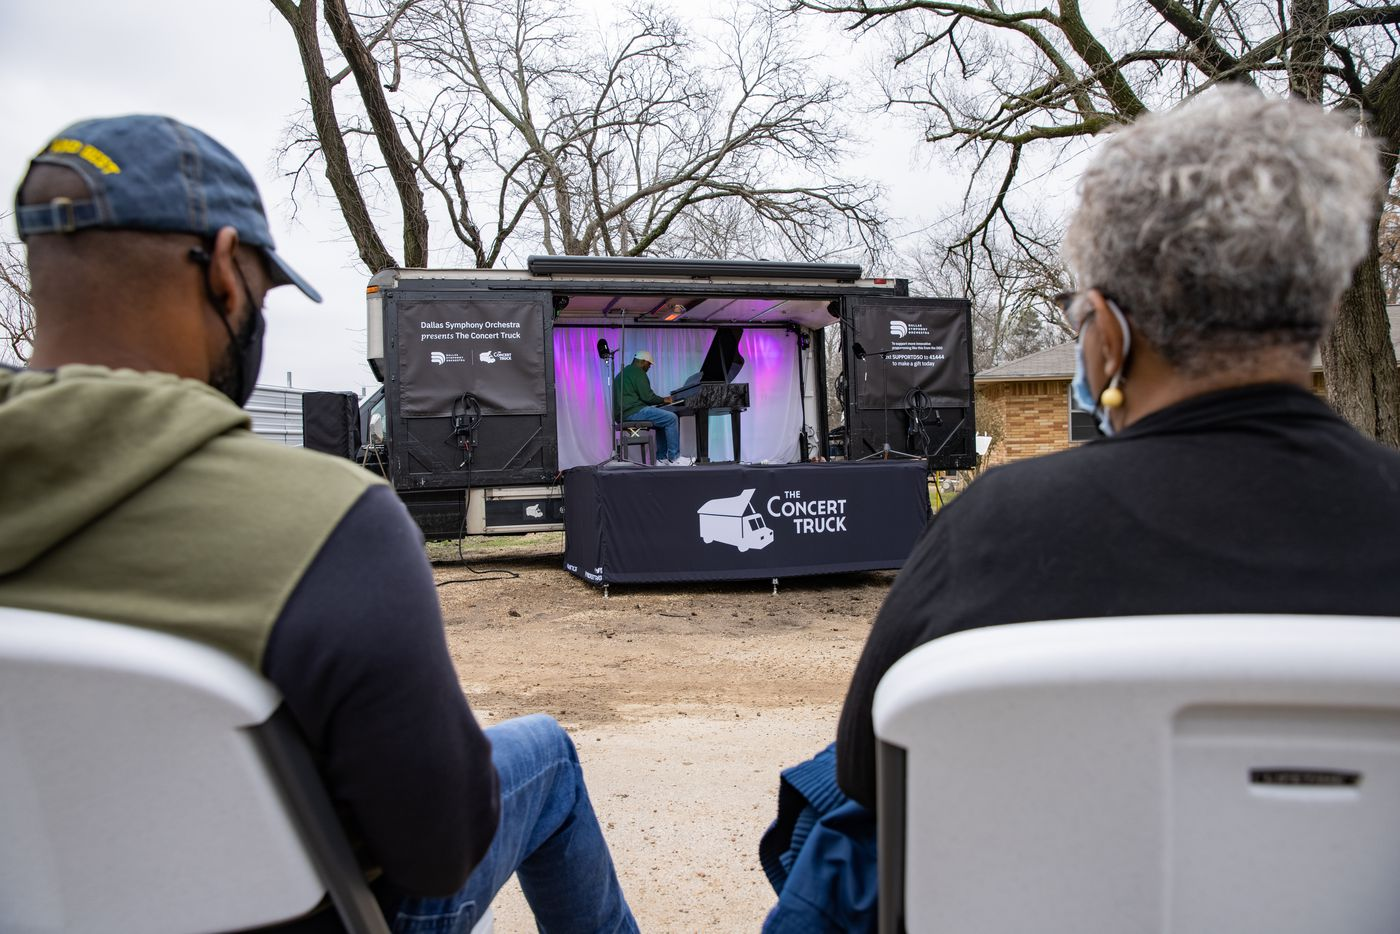 Marsha Jackson (right) and first cousin Shawn Williams listen to Shaun Martin perform outside of Jackson's home in Dallas on Friday, Feb. 26, 2021. Quincy Roberts, the contractor who moved Shingle Mountain, surprised Jackson with the concert. (Juan Figueroa/ The Dallas Morning News)